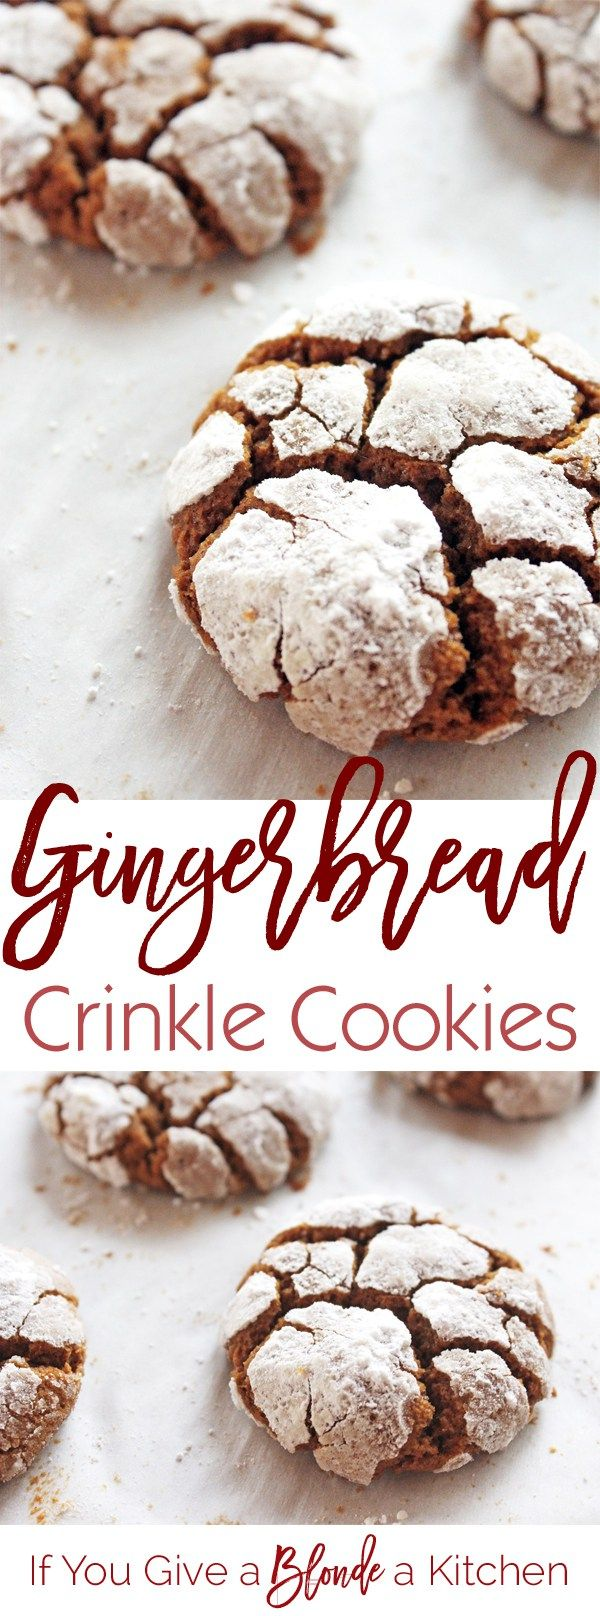 Photo of Gingerbread Crinkle Cookies   If You Give a Blonde a Kitchen